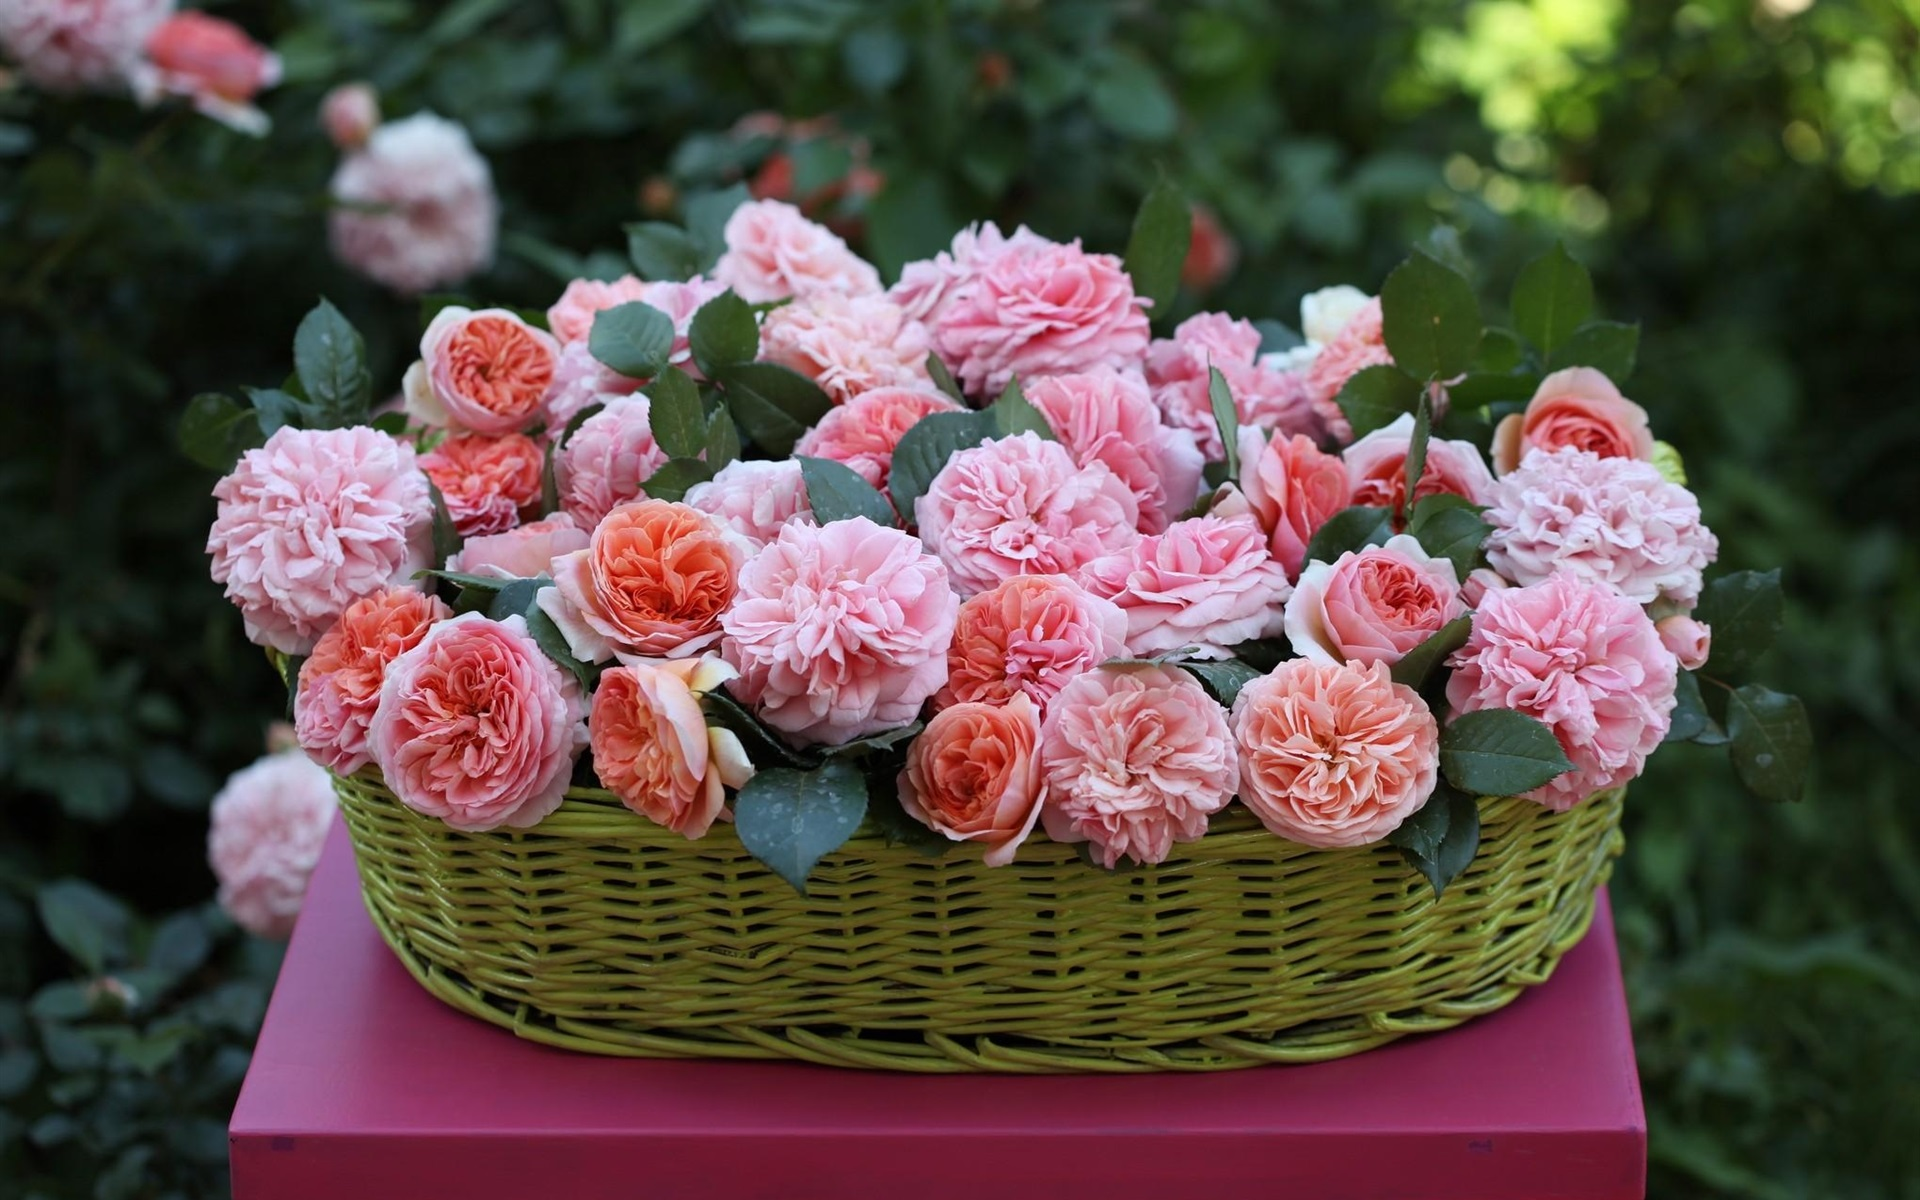 wallpaper basket, beautiful pink rose flowers 1920x1200 hd picture